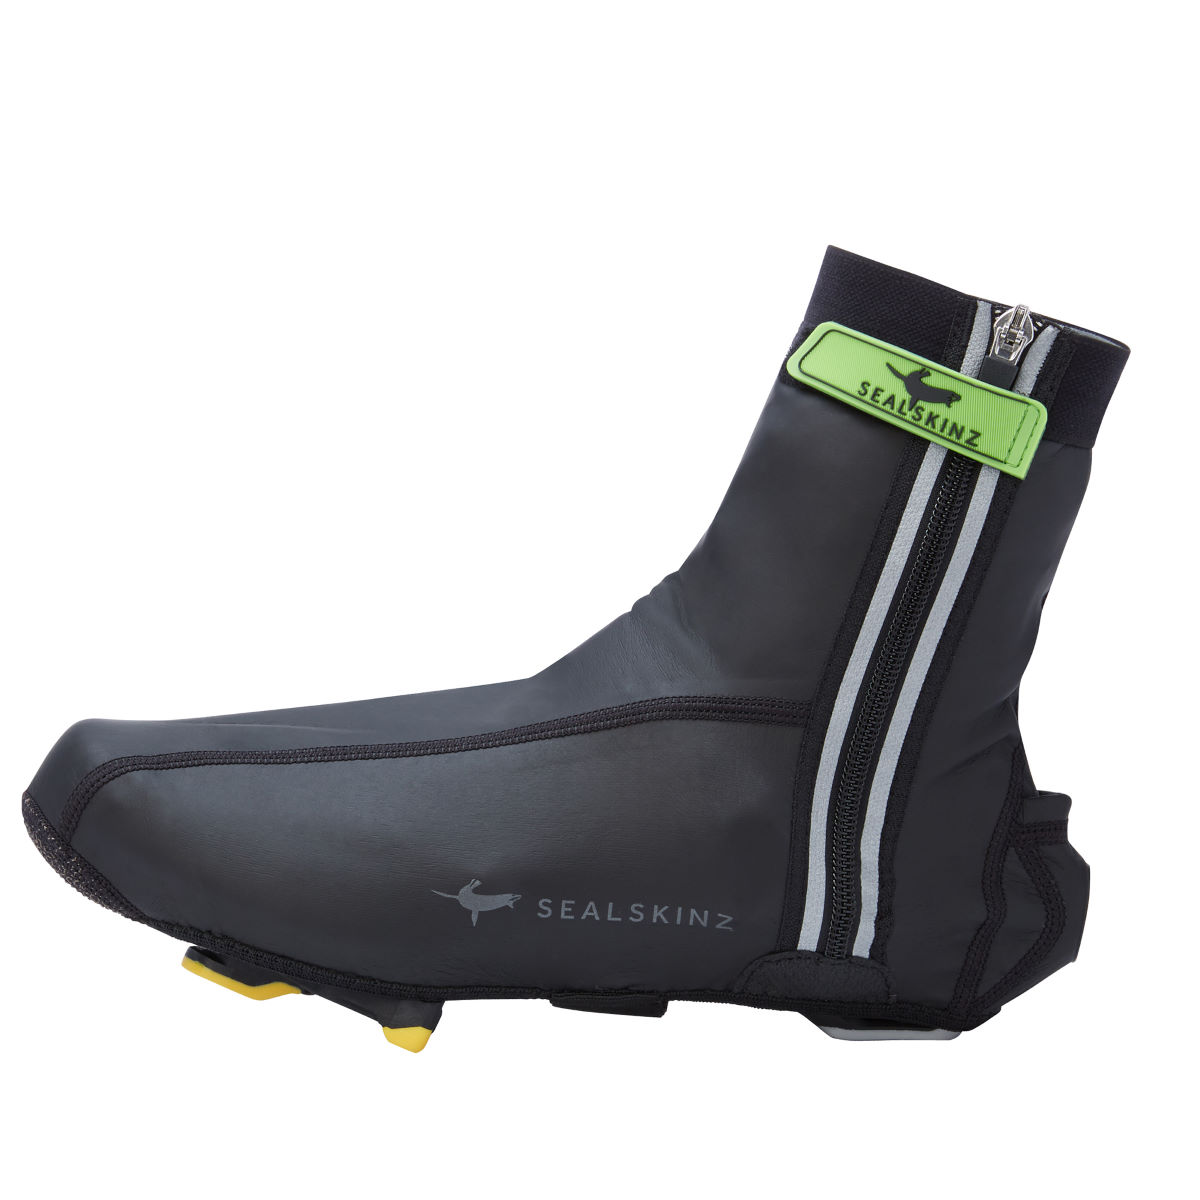 Couvre-chaussures SealSkinz Lightweight Halo (AH16) - S Noir/Rouge